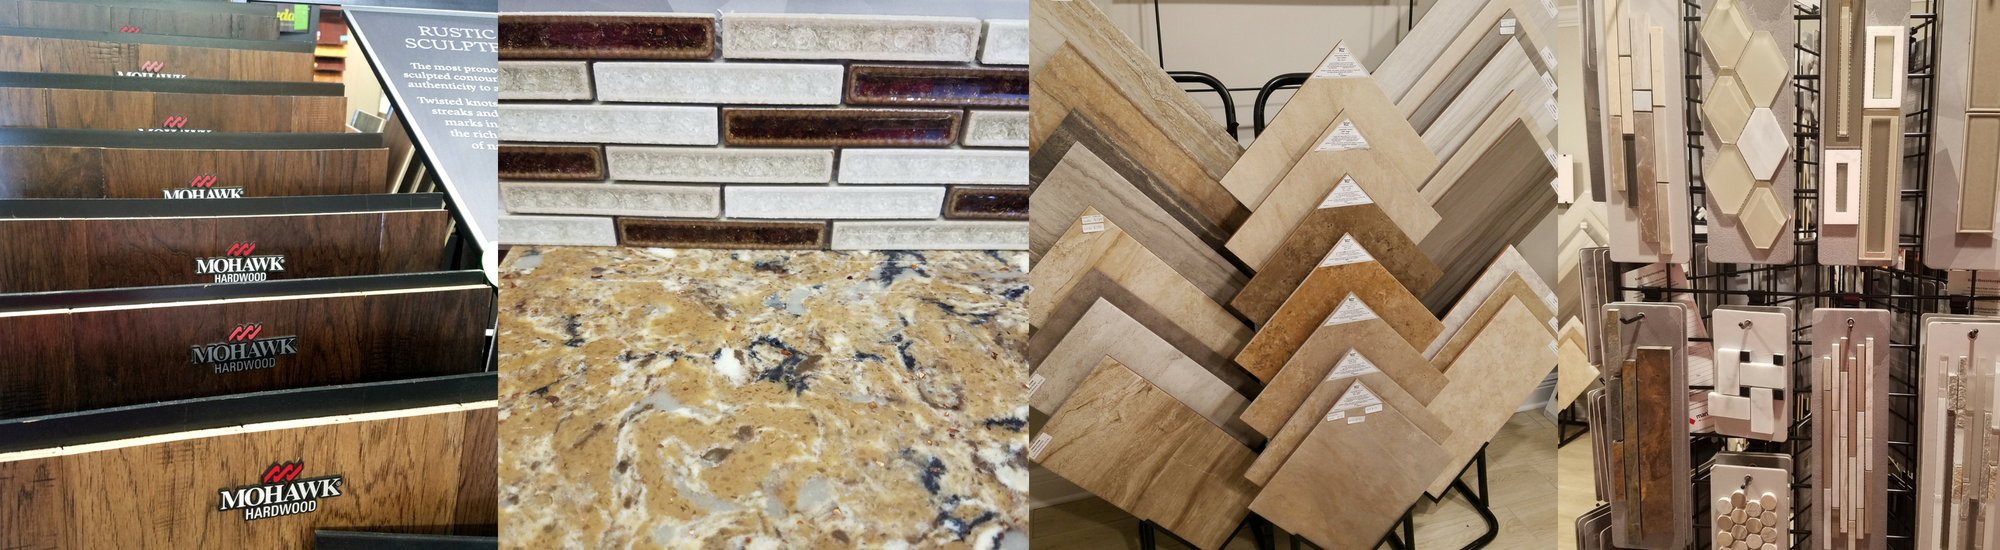 Collage of flooring and tile materials